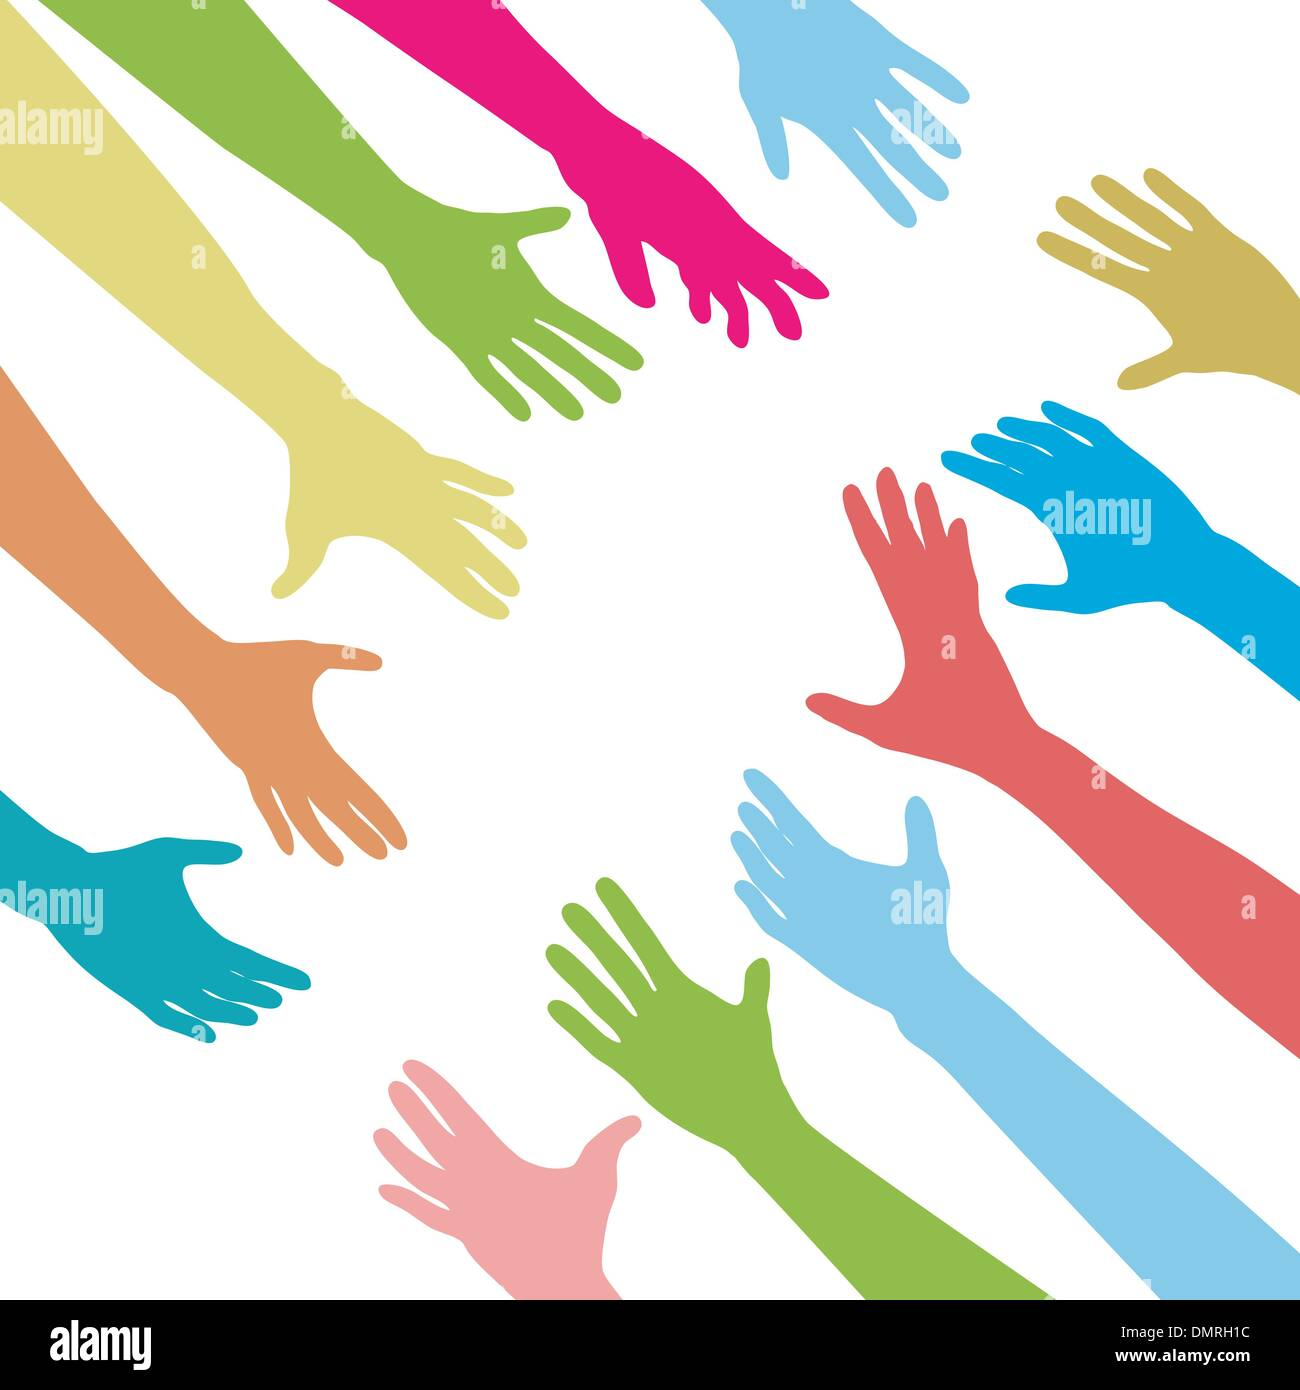 People hands reach out across unite connect - Stock Image